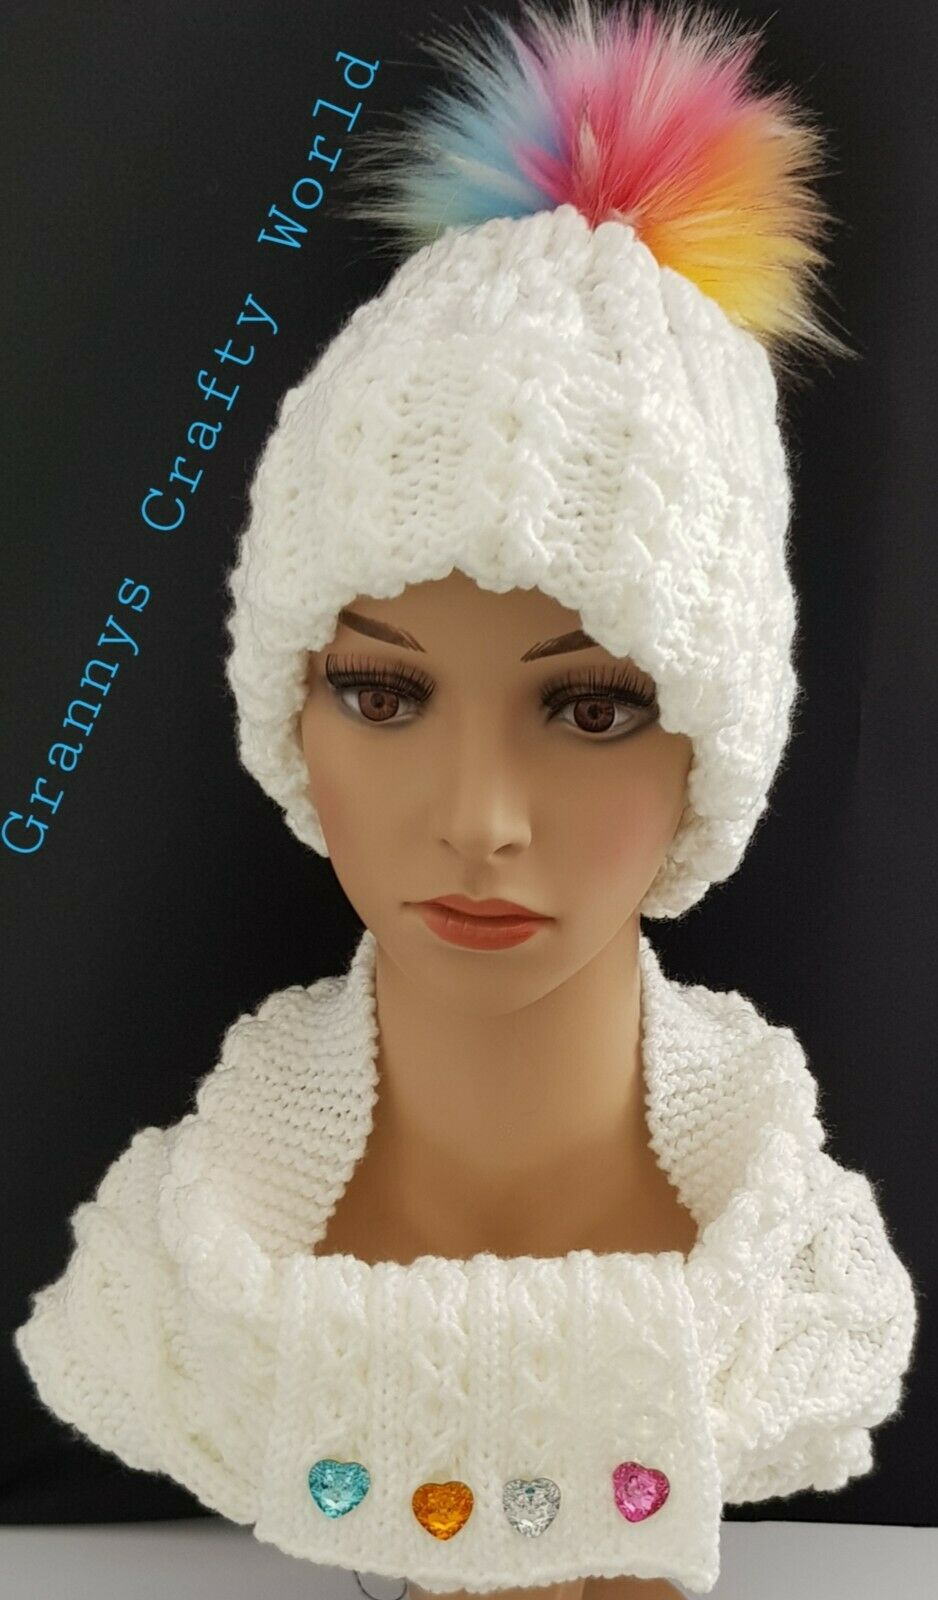 Hand Knitted Cable Blanco Grueso Beanie sombrero y redecilla